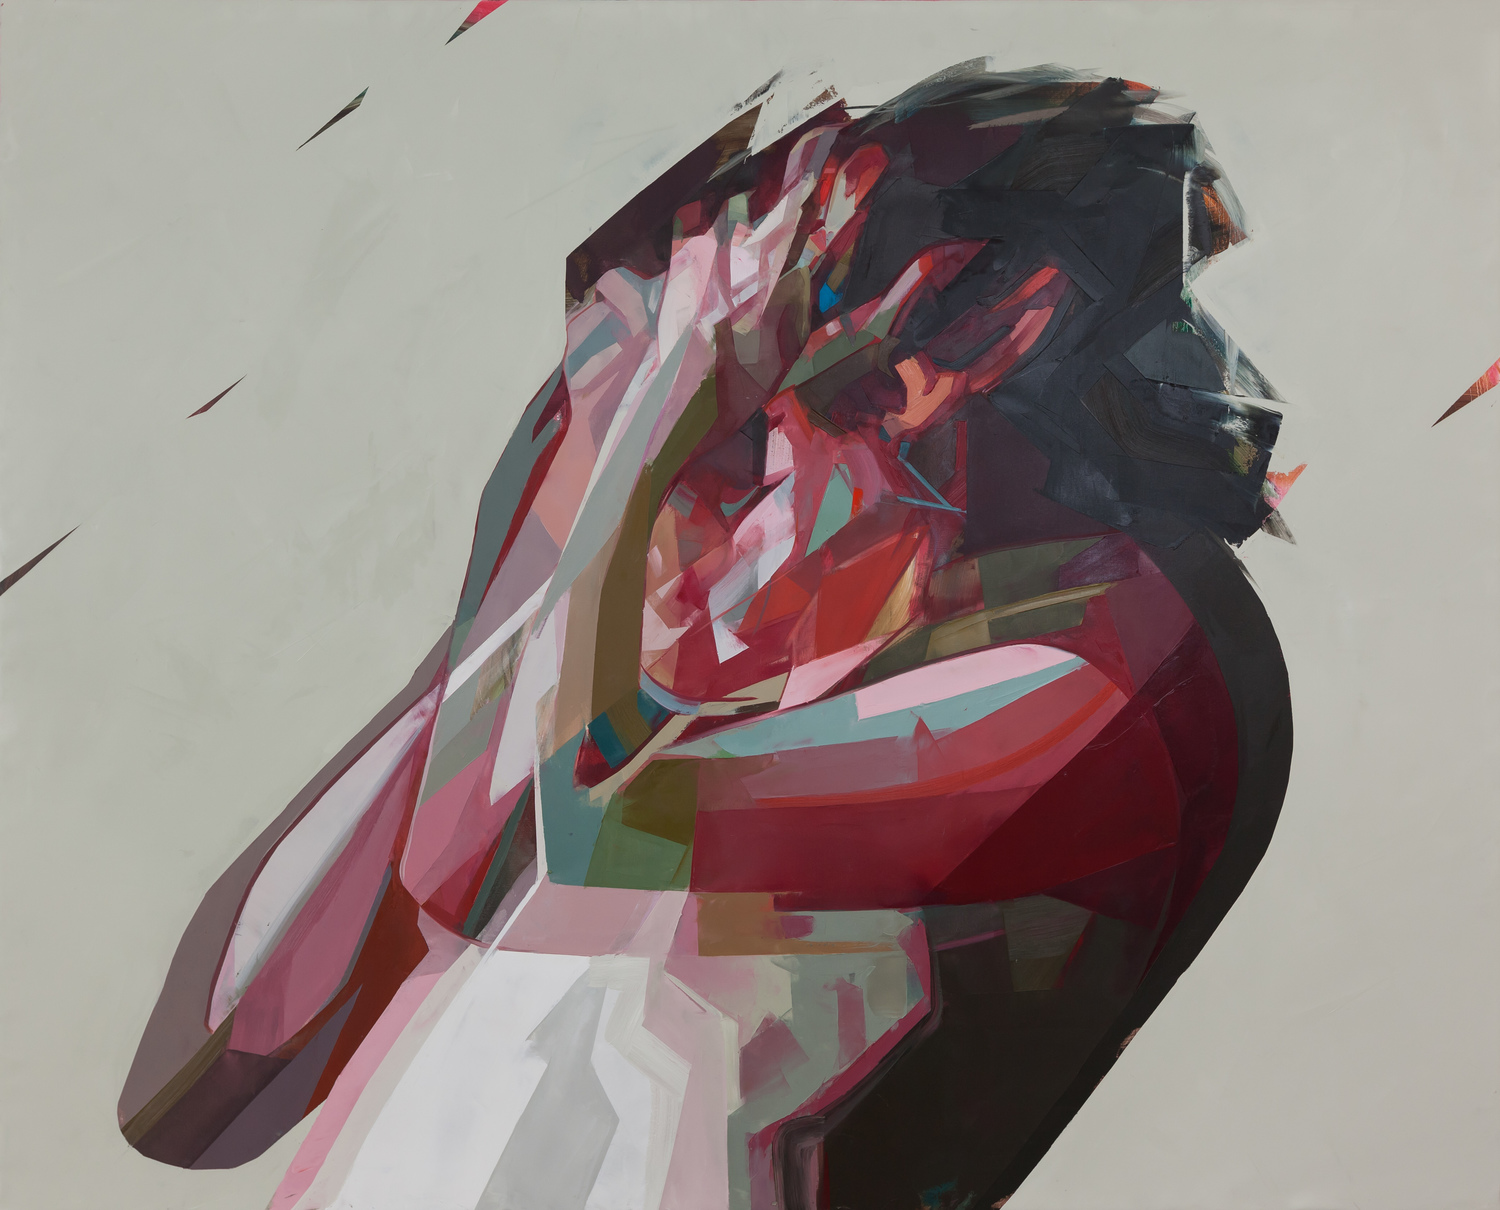 Large simon birch artist theskywasaquamarine 216x267cm 2015